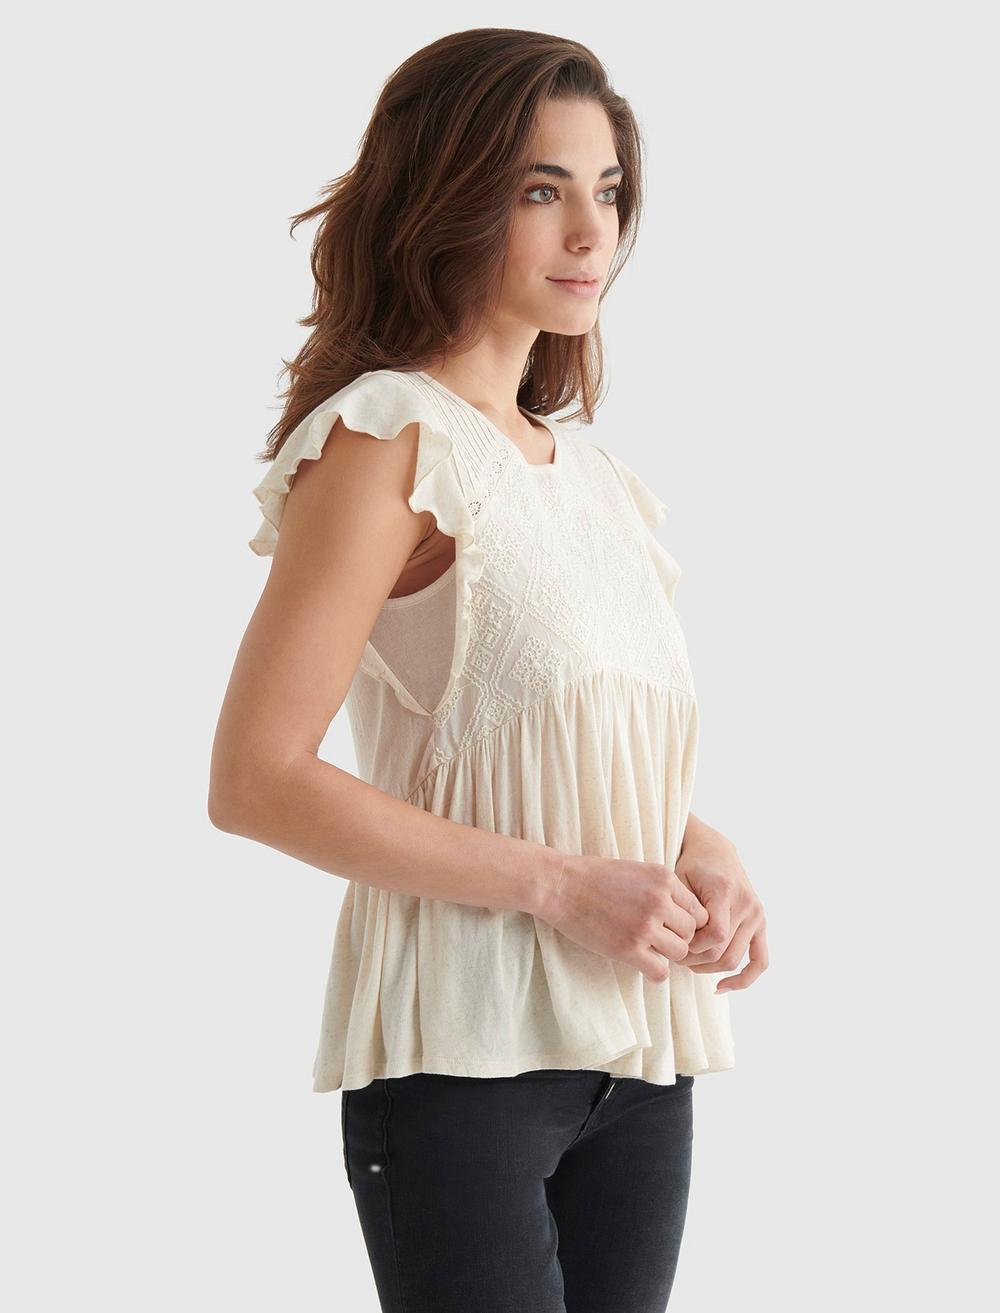 SHORT SLEEVE EMBROIDERED DOLMAN TOP, image 3